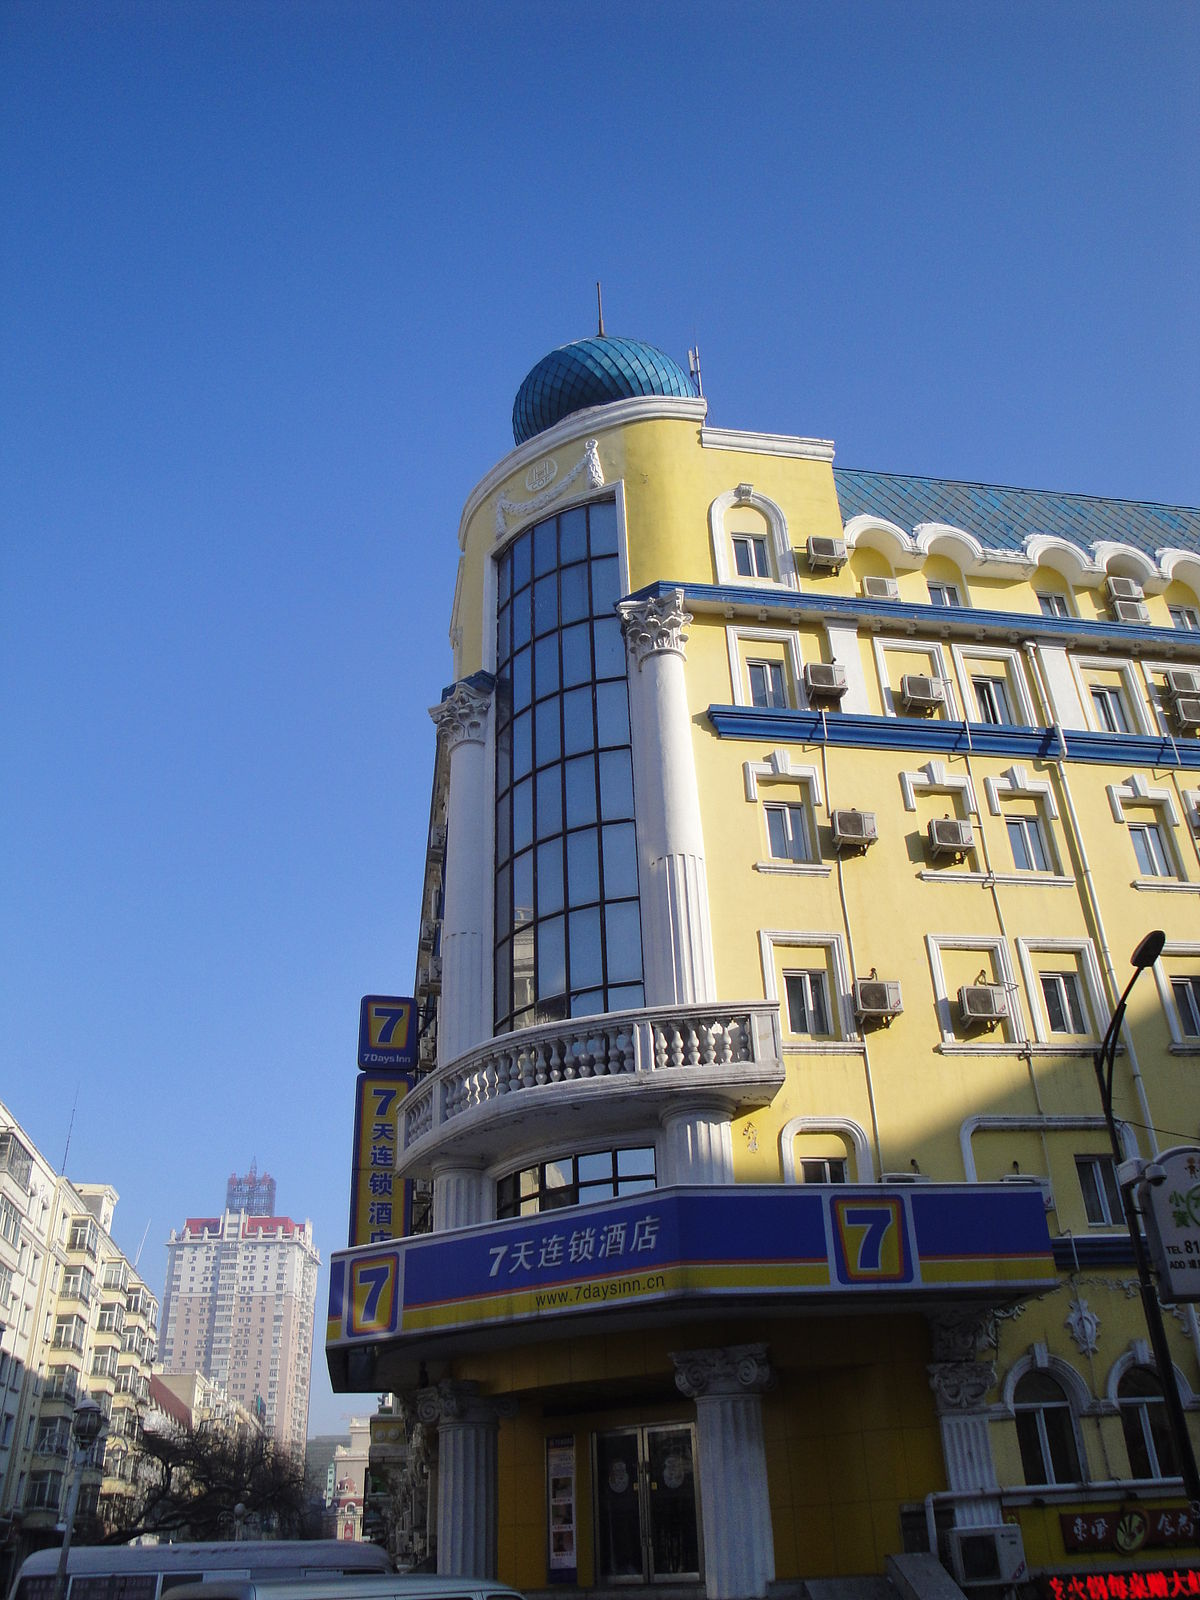 7 days inn case 7 days inn shanghai lujiazui - find the best deal at hotelscombinedcom compare all the top travel sites at once rated 80 out of 10 from 639 reviews.